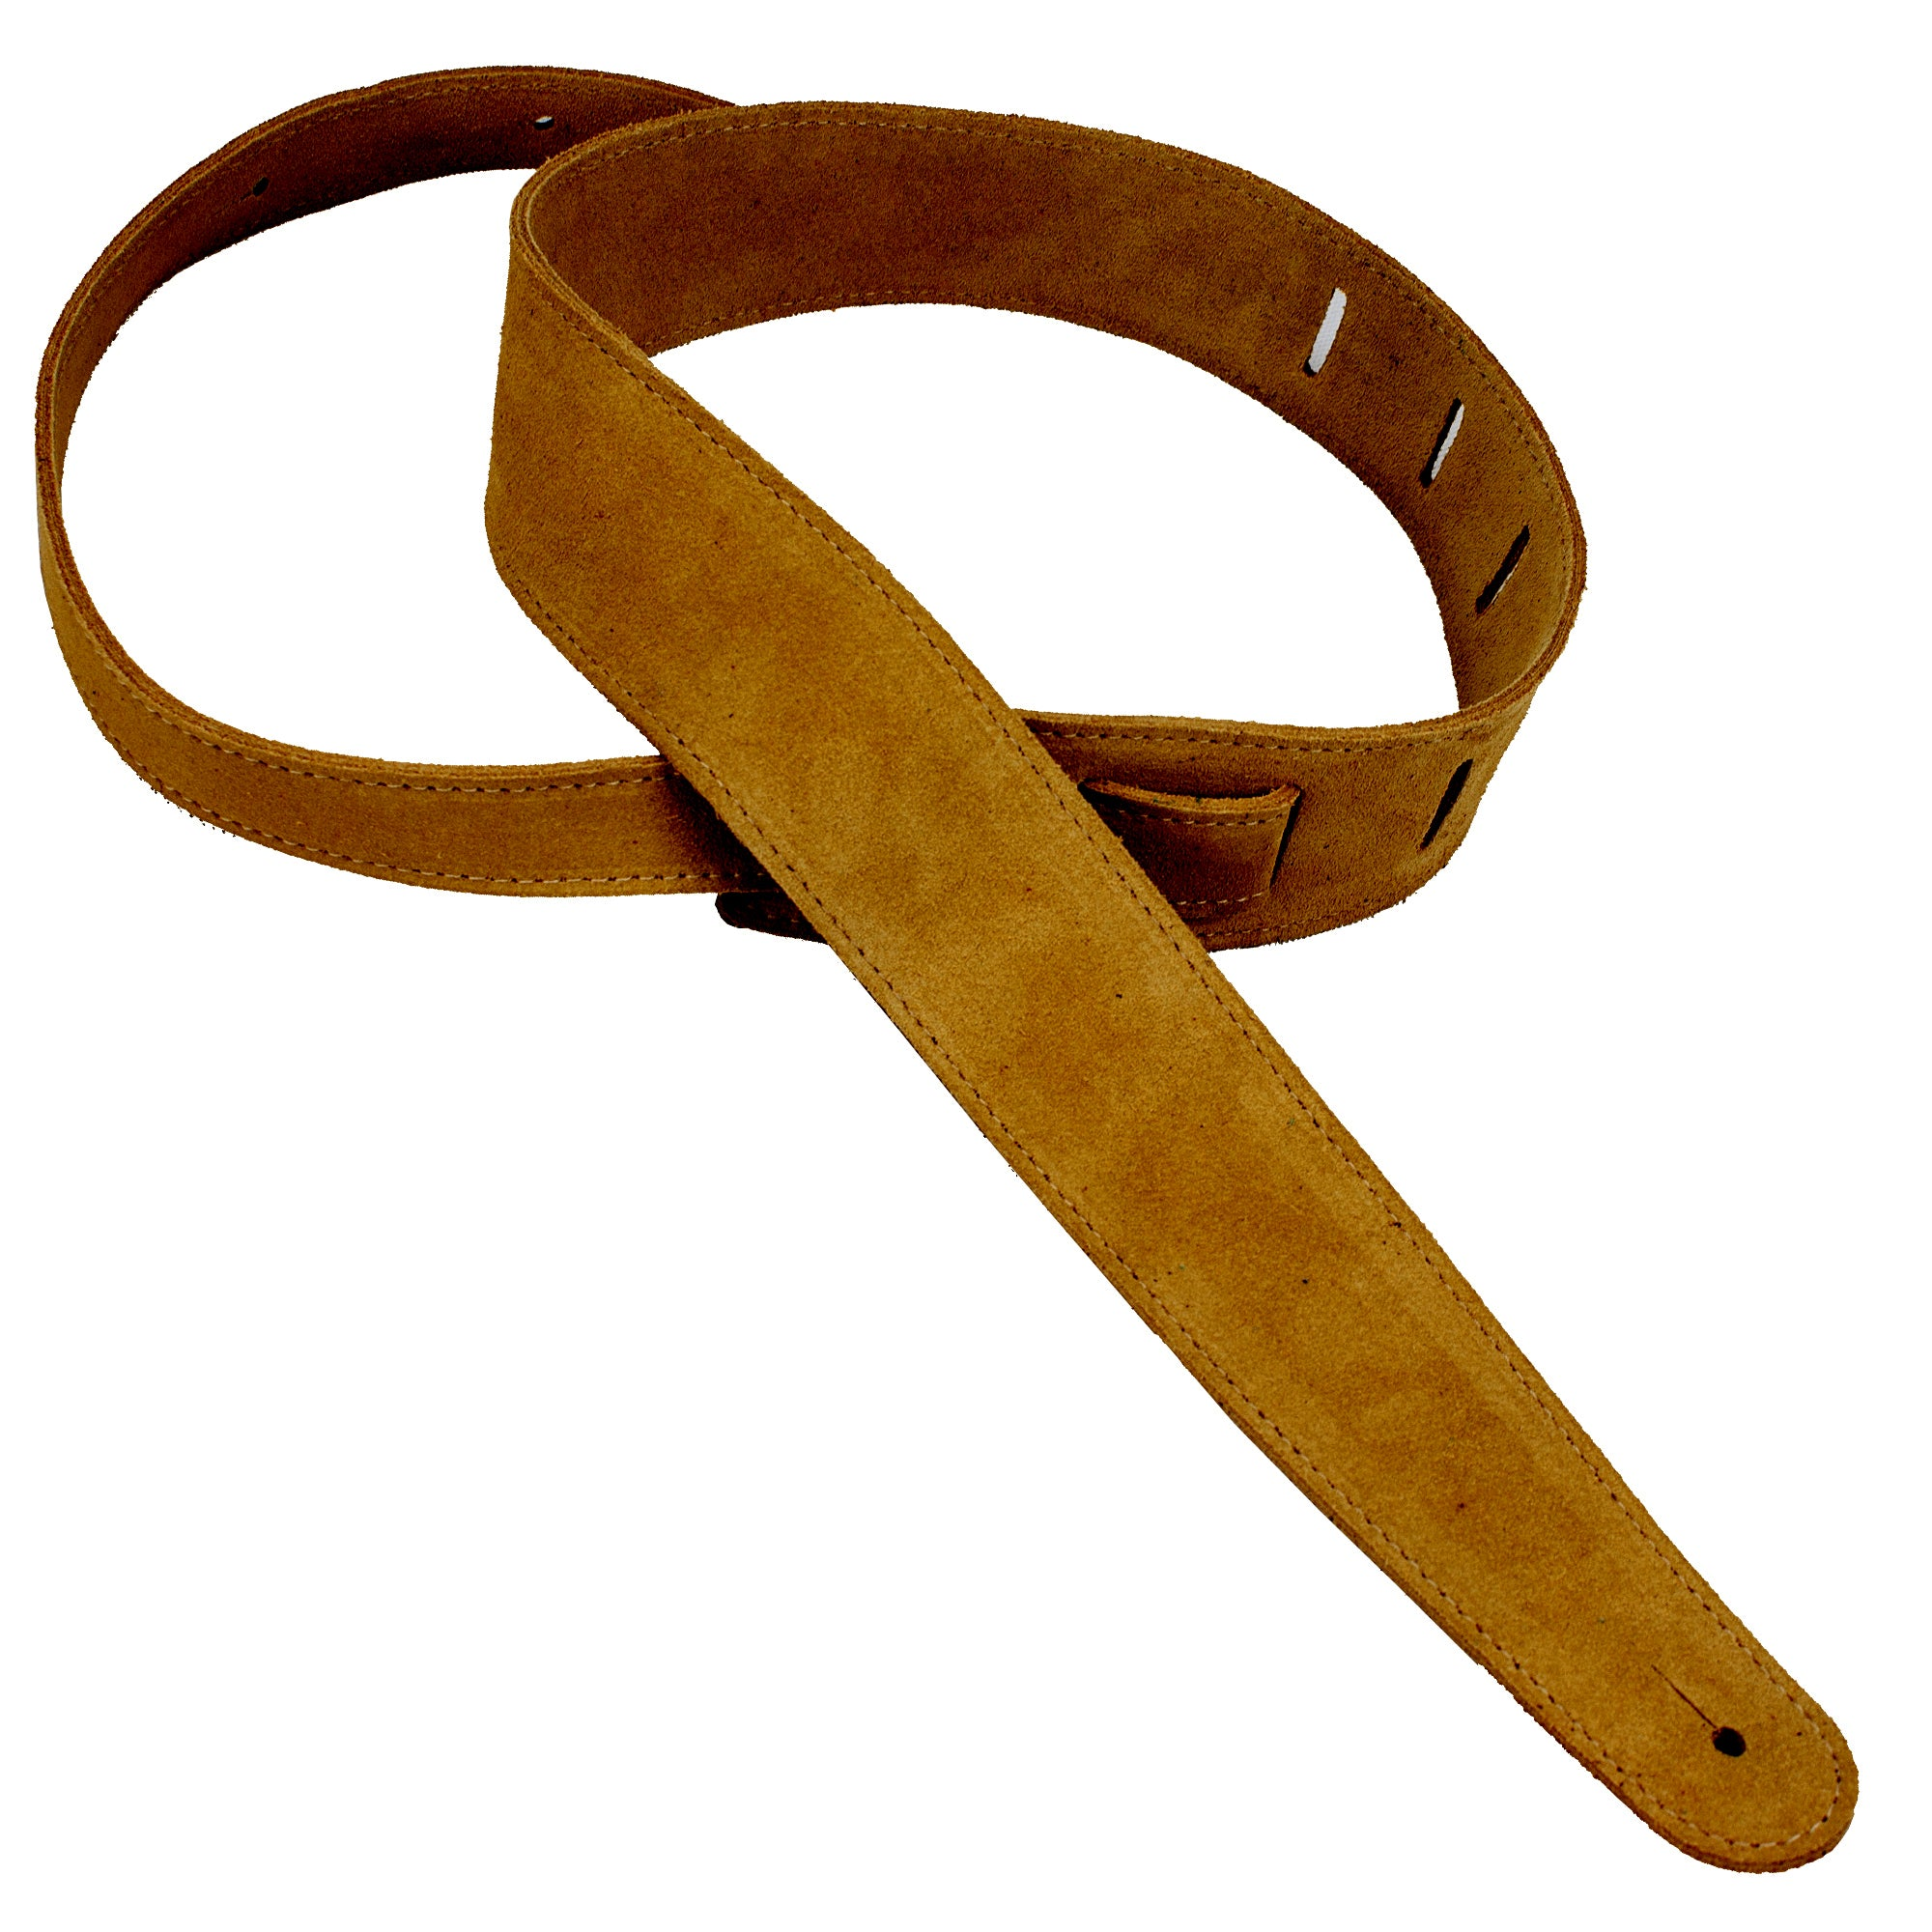 "Henry Heller 2.5"" Honey-Colored Capri Suede Guitar Strap"